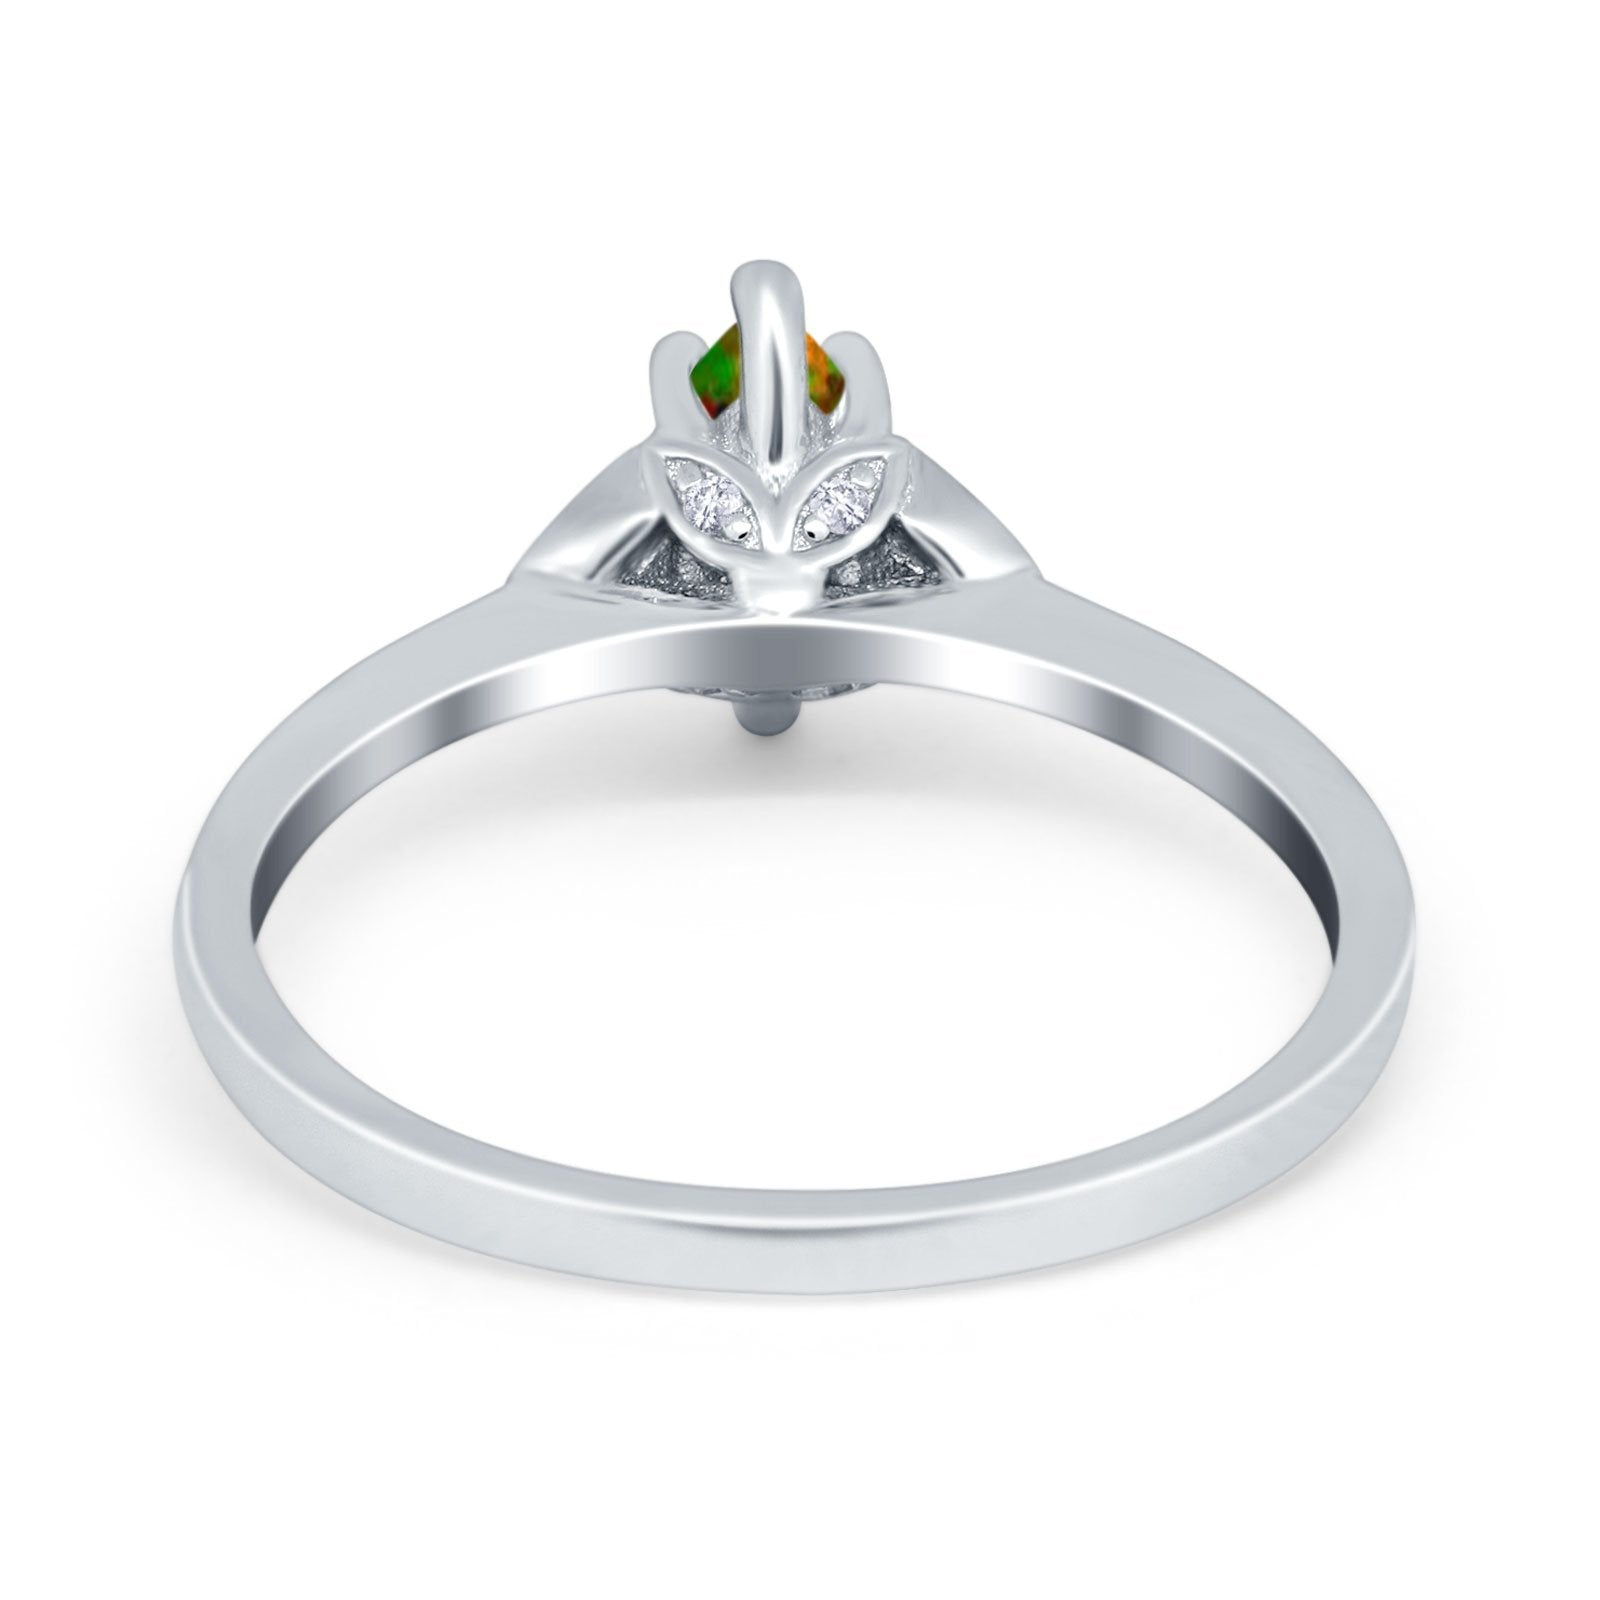 Marquise Art Deco Engagement Ring Simulated Cubic Zirconia 925 Sterling Silver